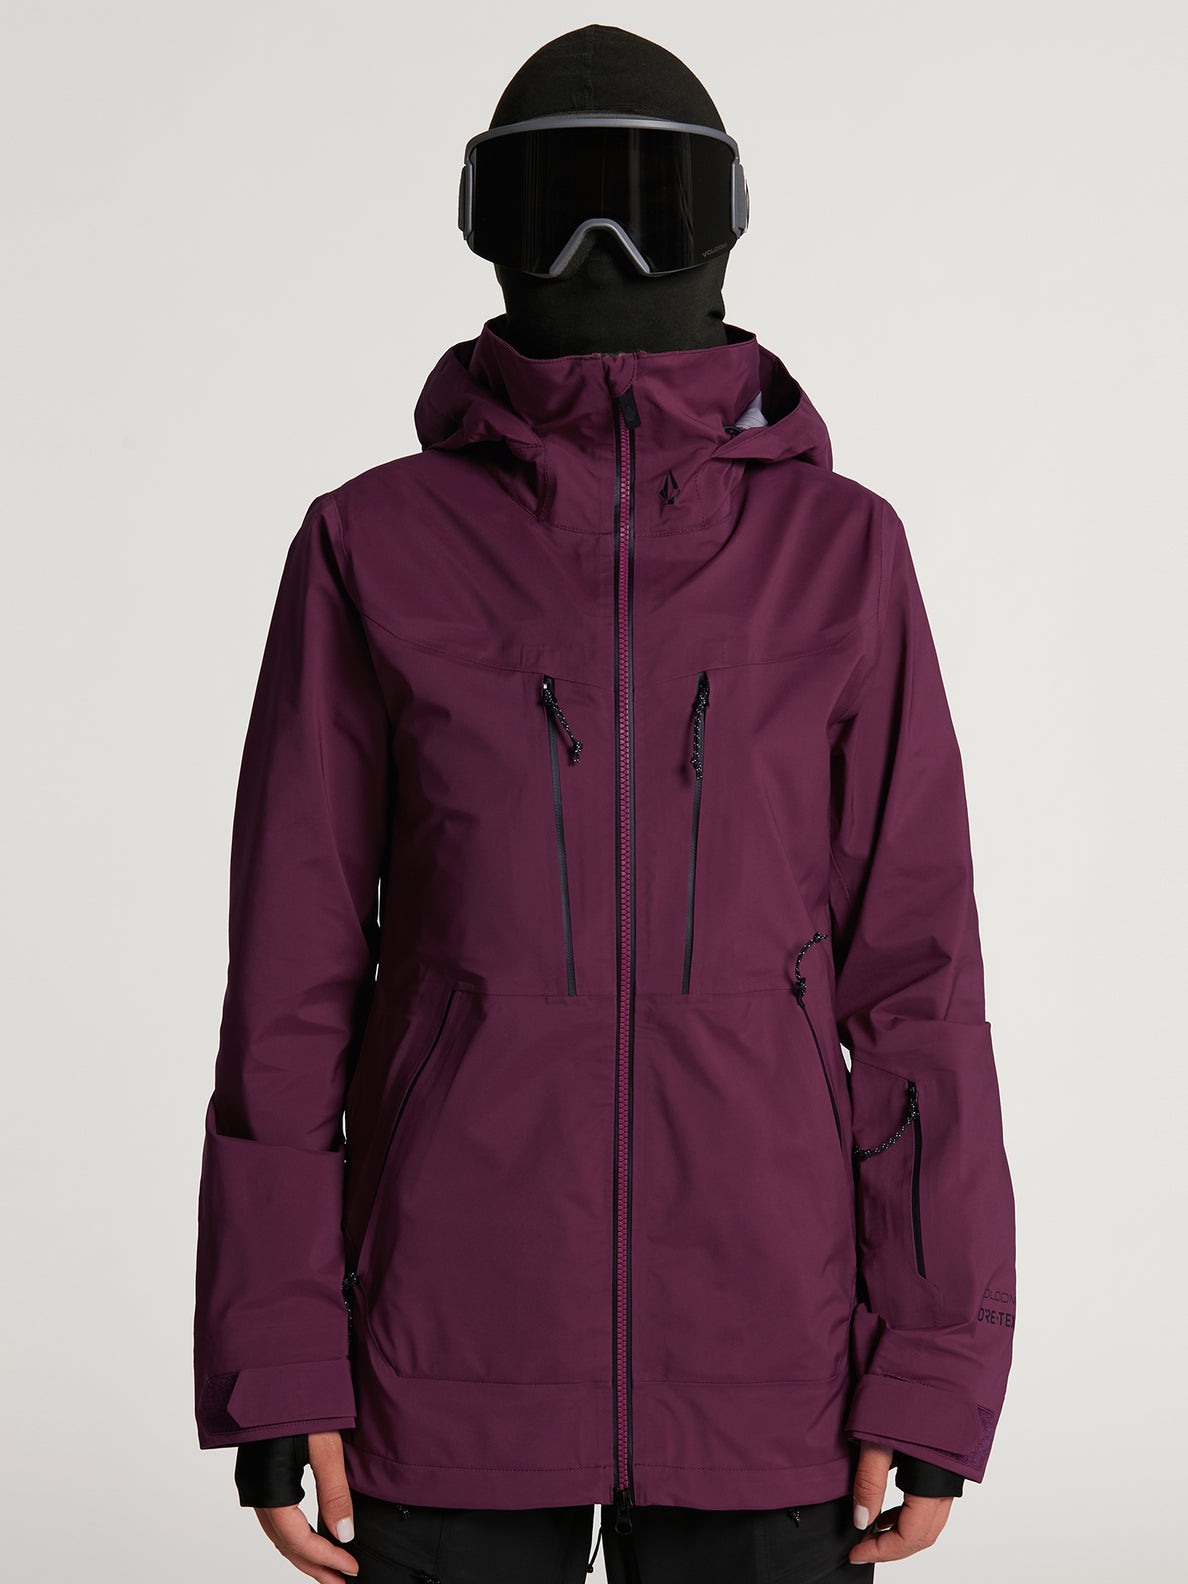 Womens VS Stretch GORE-TEX Jacket - Vibrant Purple (H0652103_VIB) [1]